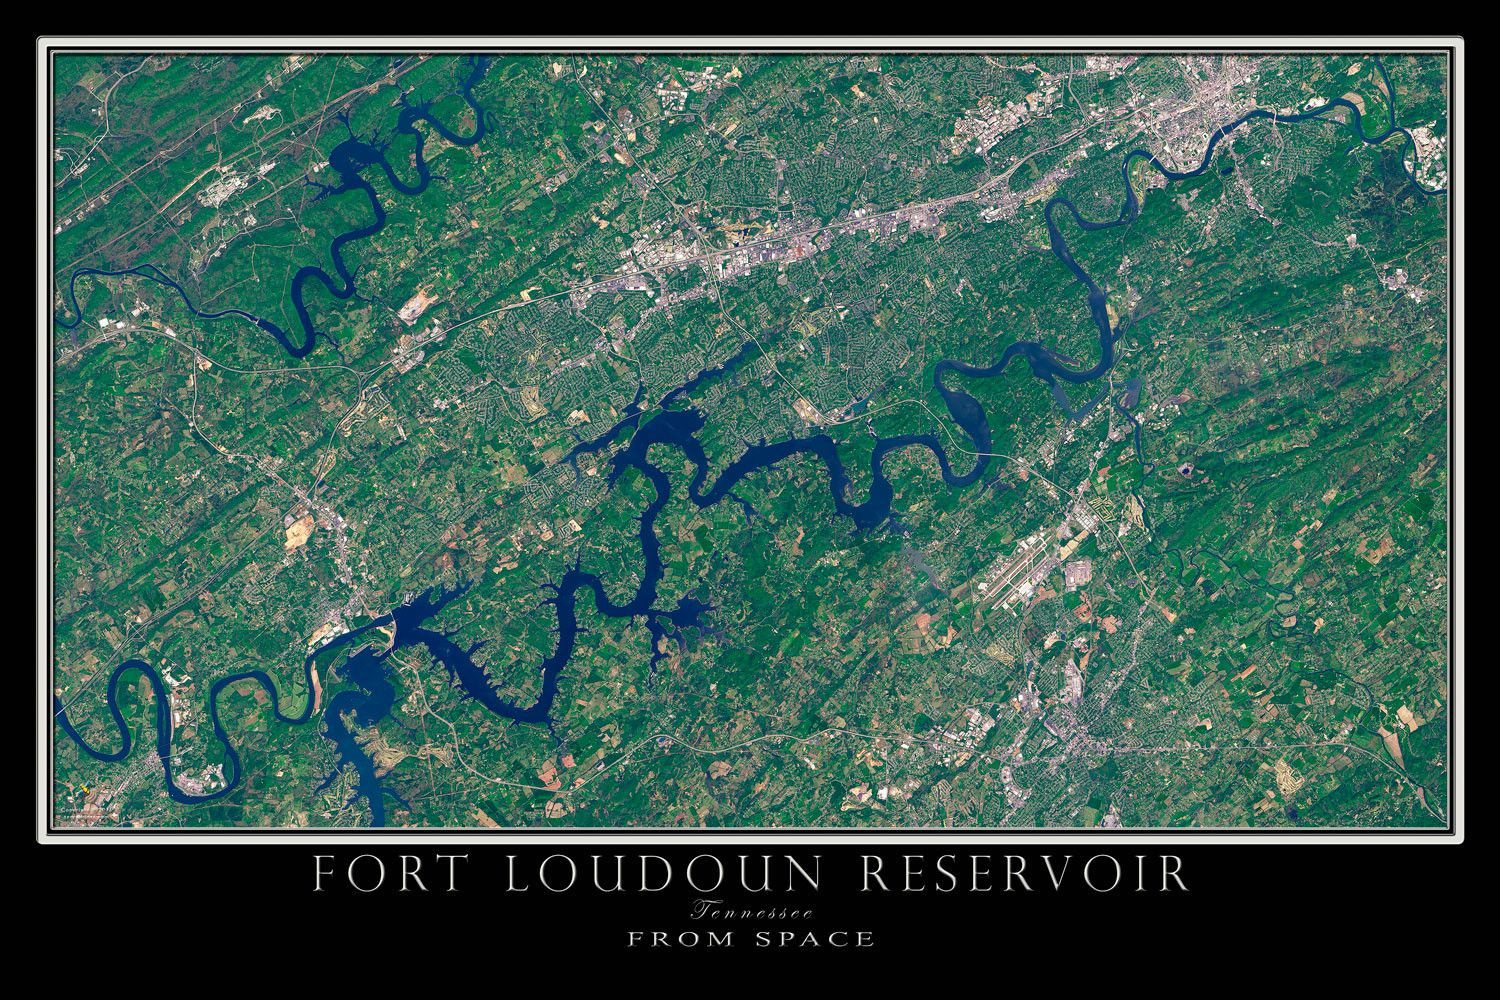 fort loudoun lake map The Fort Loudoun Lake Tennessee Satellite Poster Map With Images fort loudoun lake map